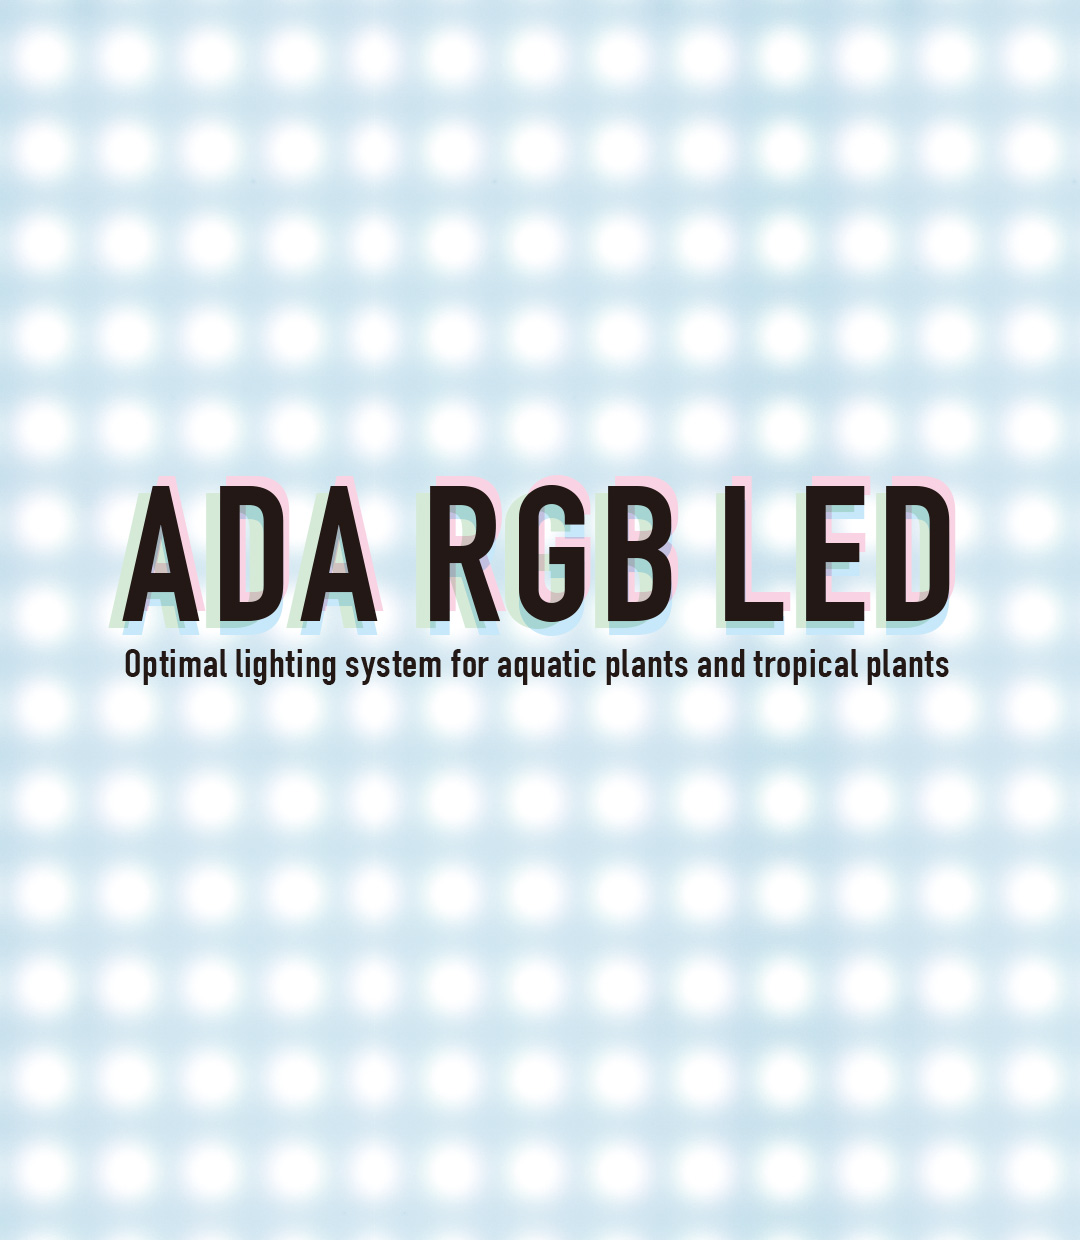 ADA RGB LED 'Pursuit of Ideal Light Beyond the Sunlight'